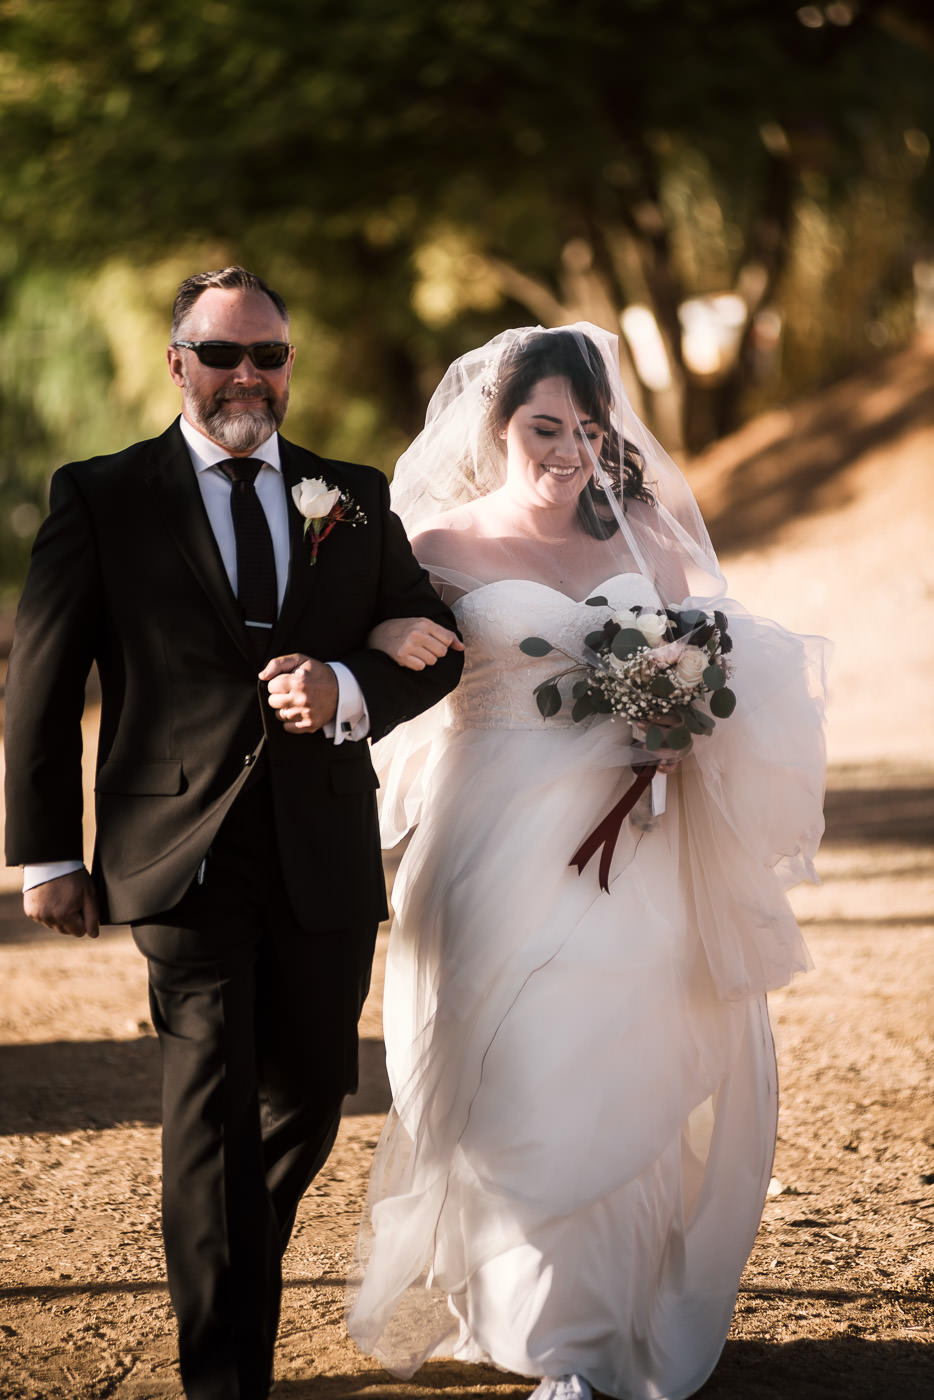 Father walks his daughter down the aisle at her country wedding in Temecula.